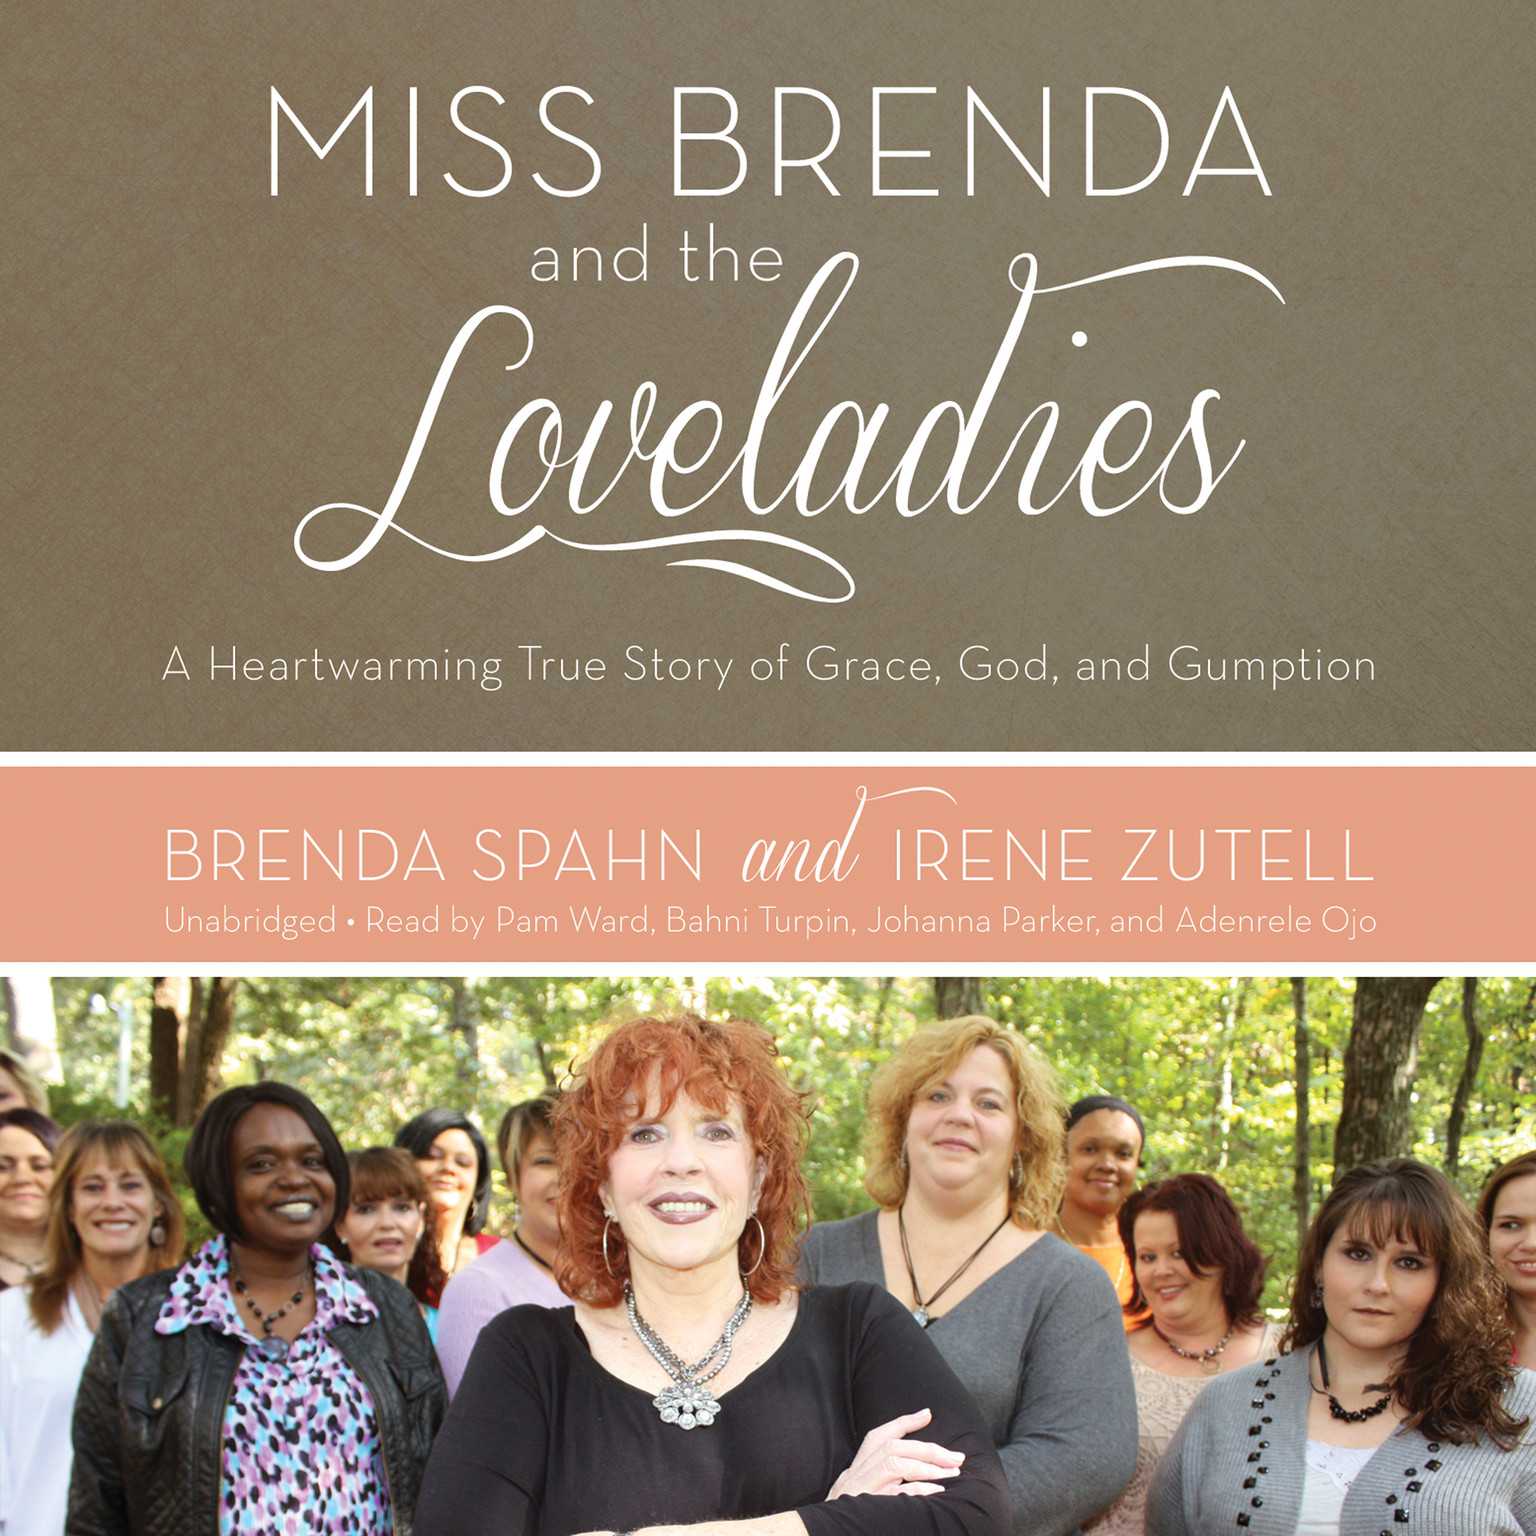 Printable Miss Brenda and the Loveladies: A Heartwarming True Story of Grace, God, and Gumption Audiobook Cover Art